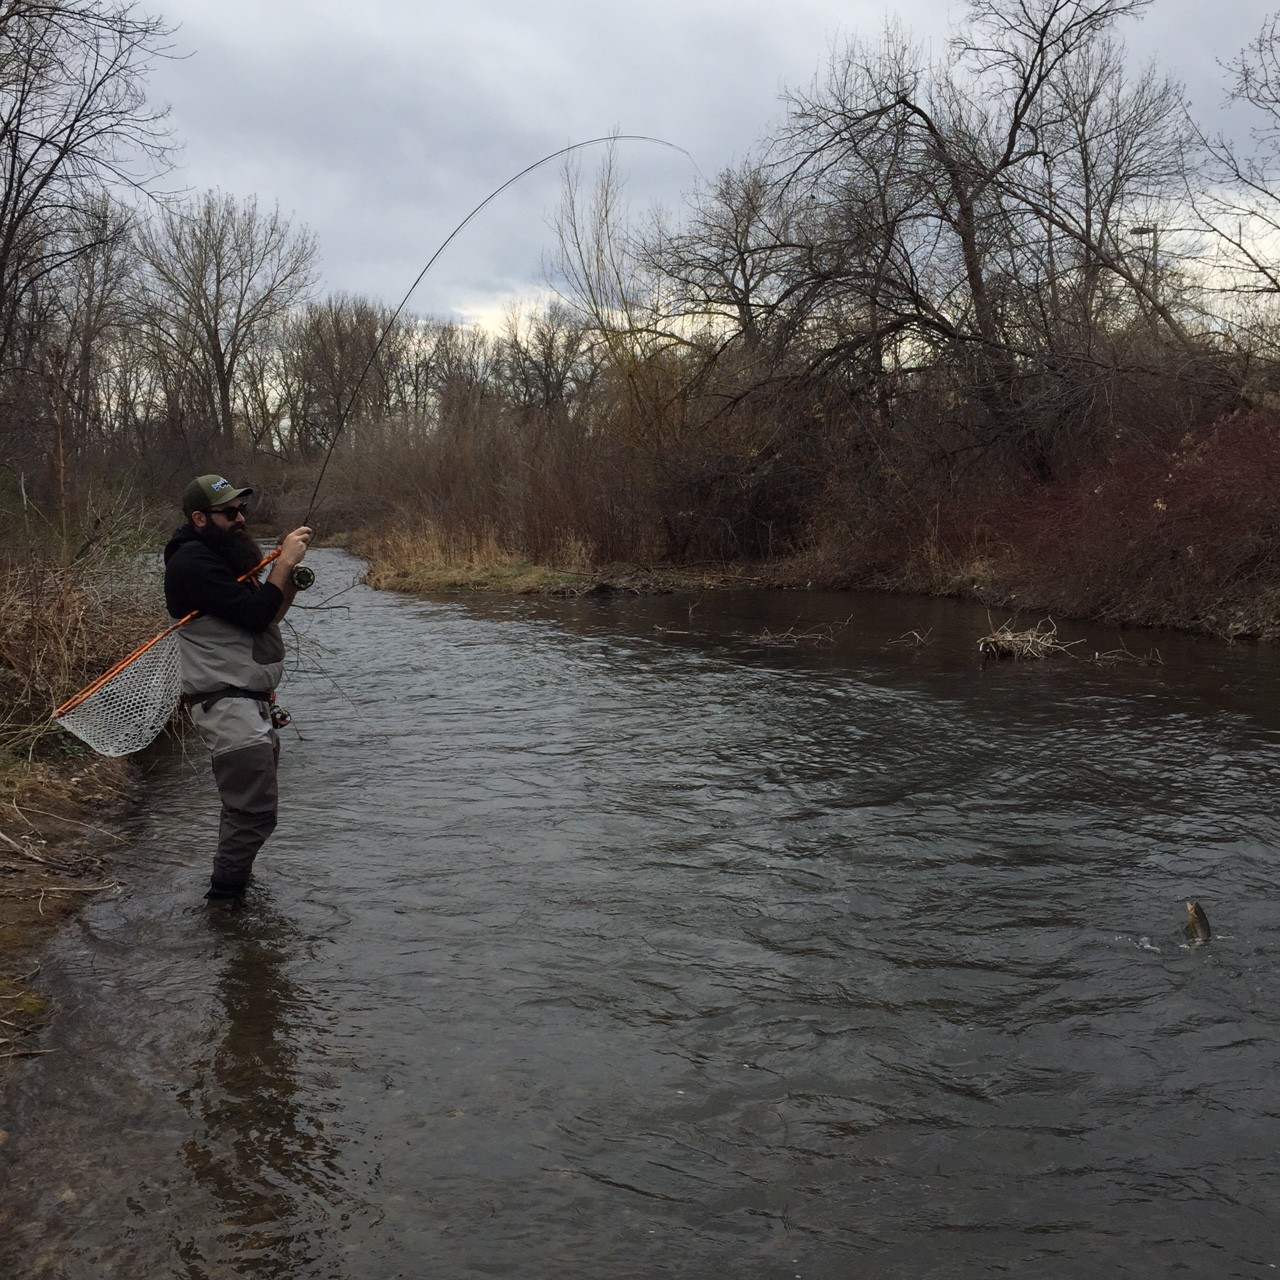 Black hills fly fishing report april 9th 2015 for Black hills fly fishing